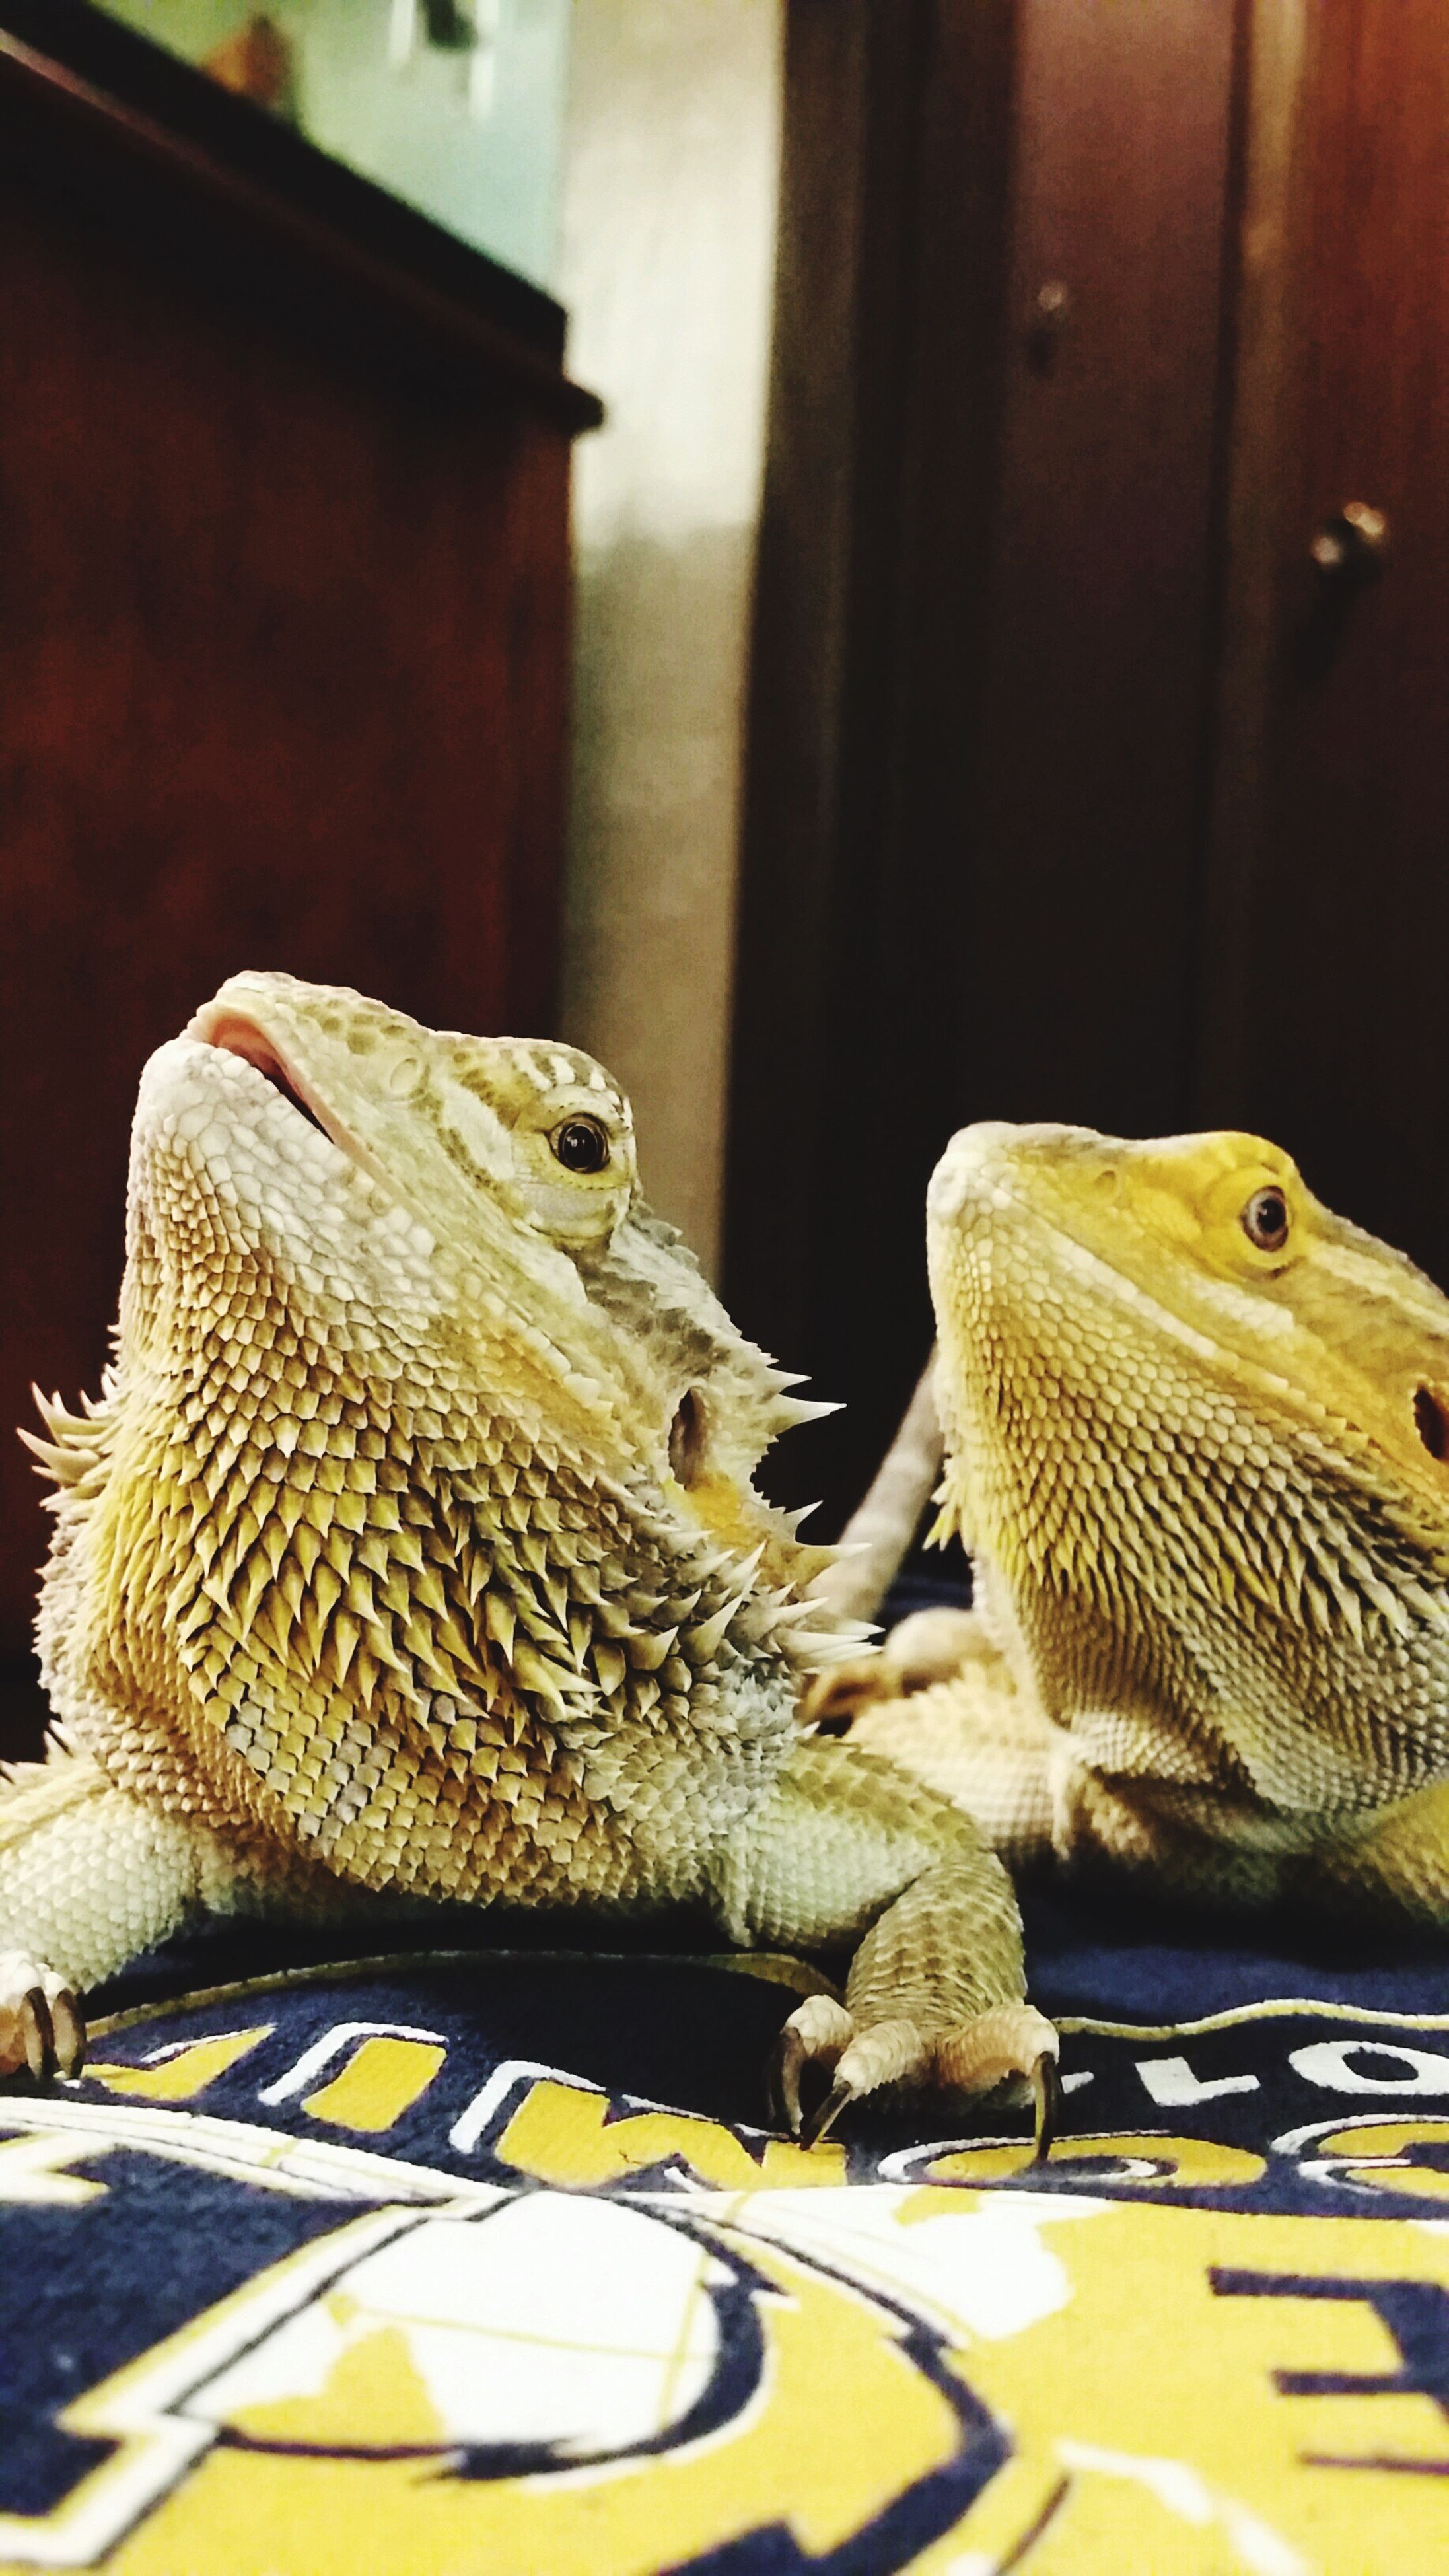 animal themes, table, indoors, one animal, reptile, no people, bearded dragon, pets, close-up, day, animal scale